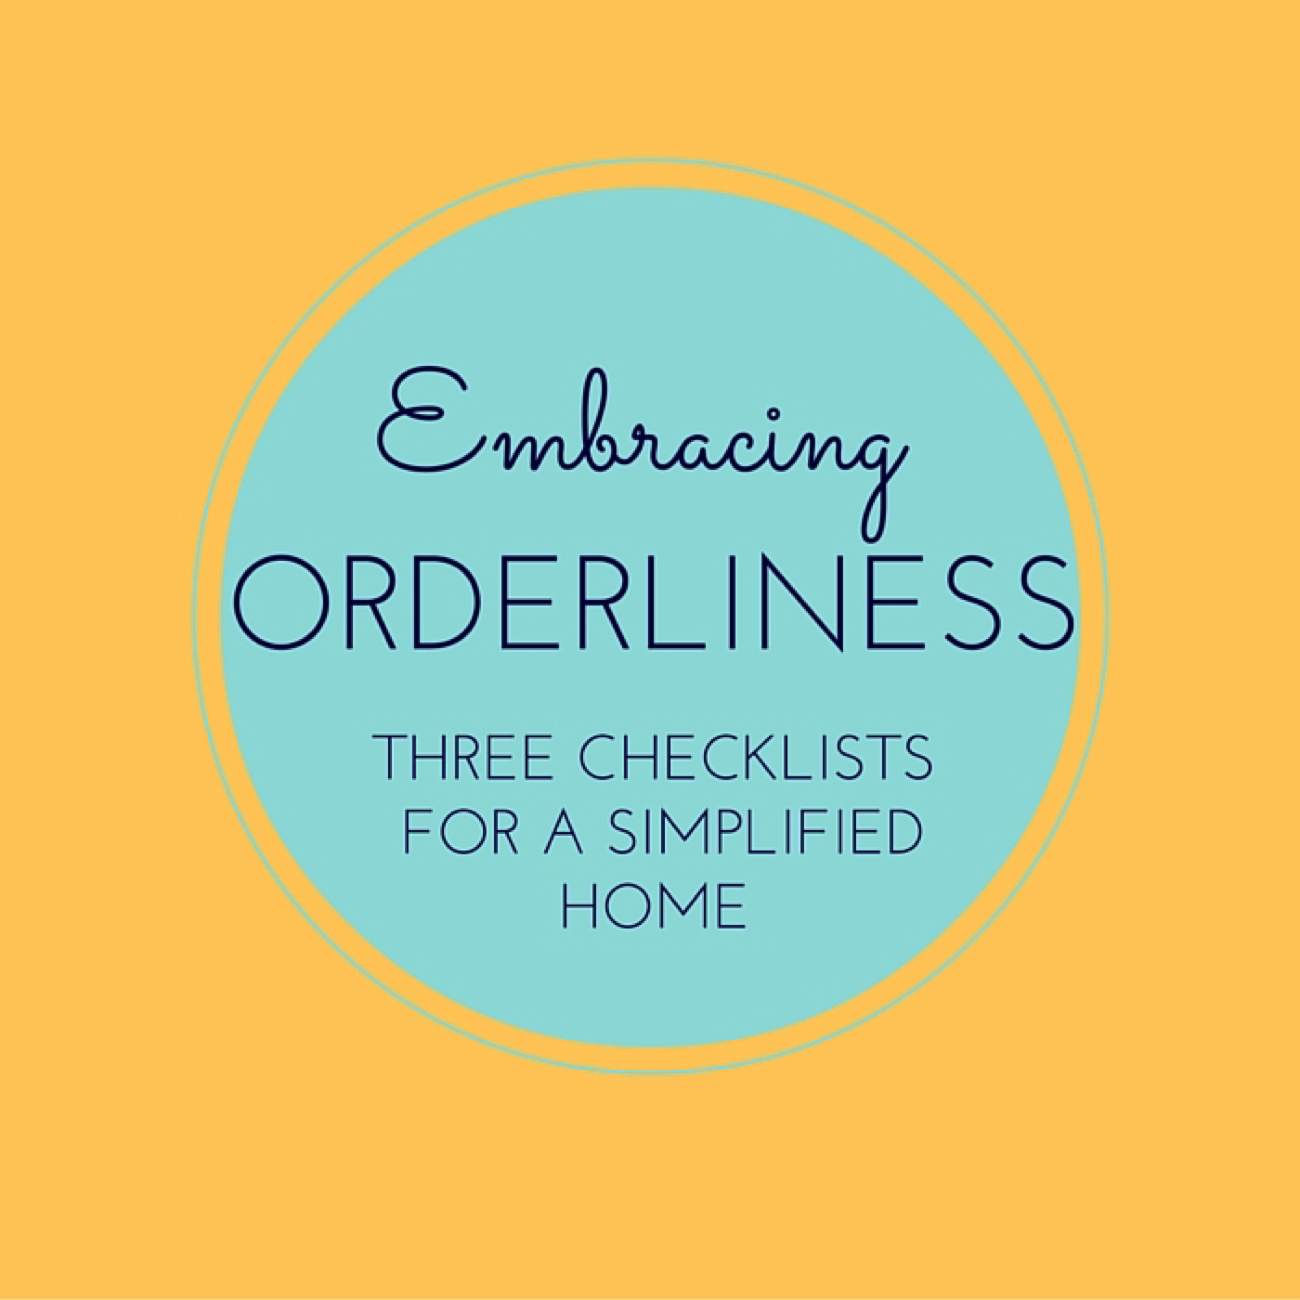 embracing_orderliness-png